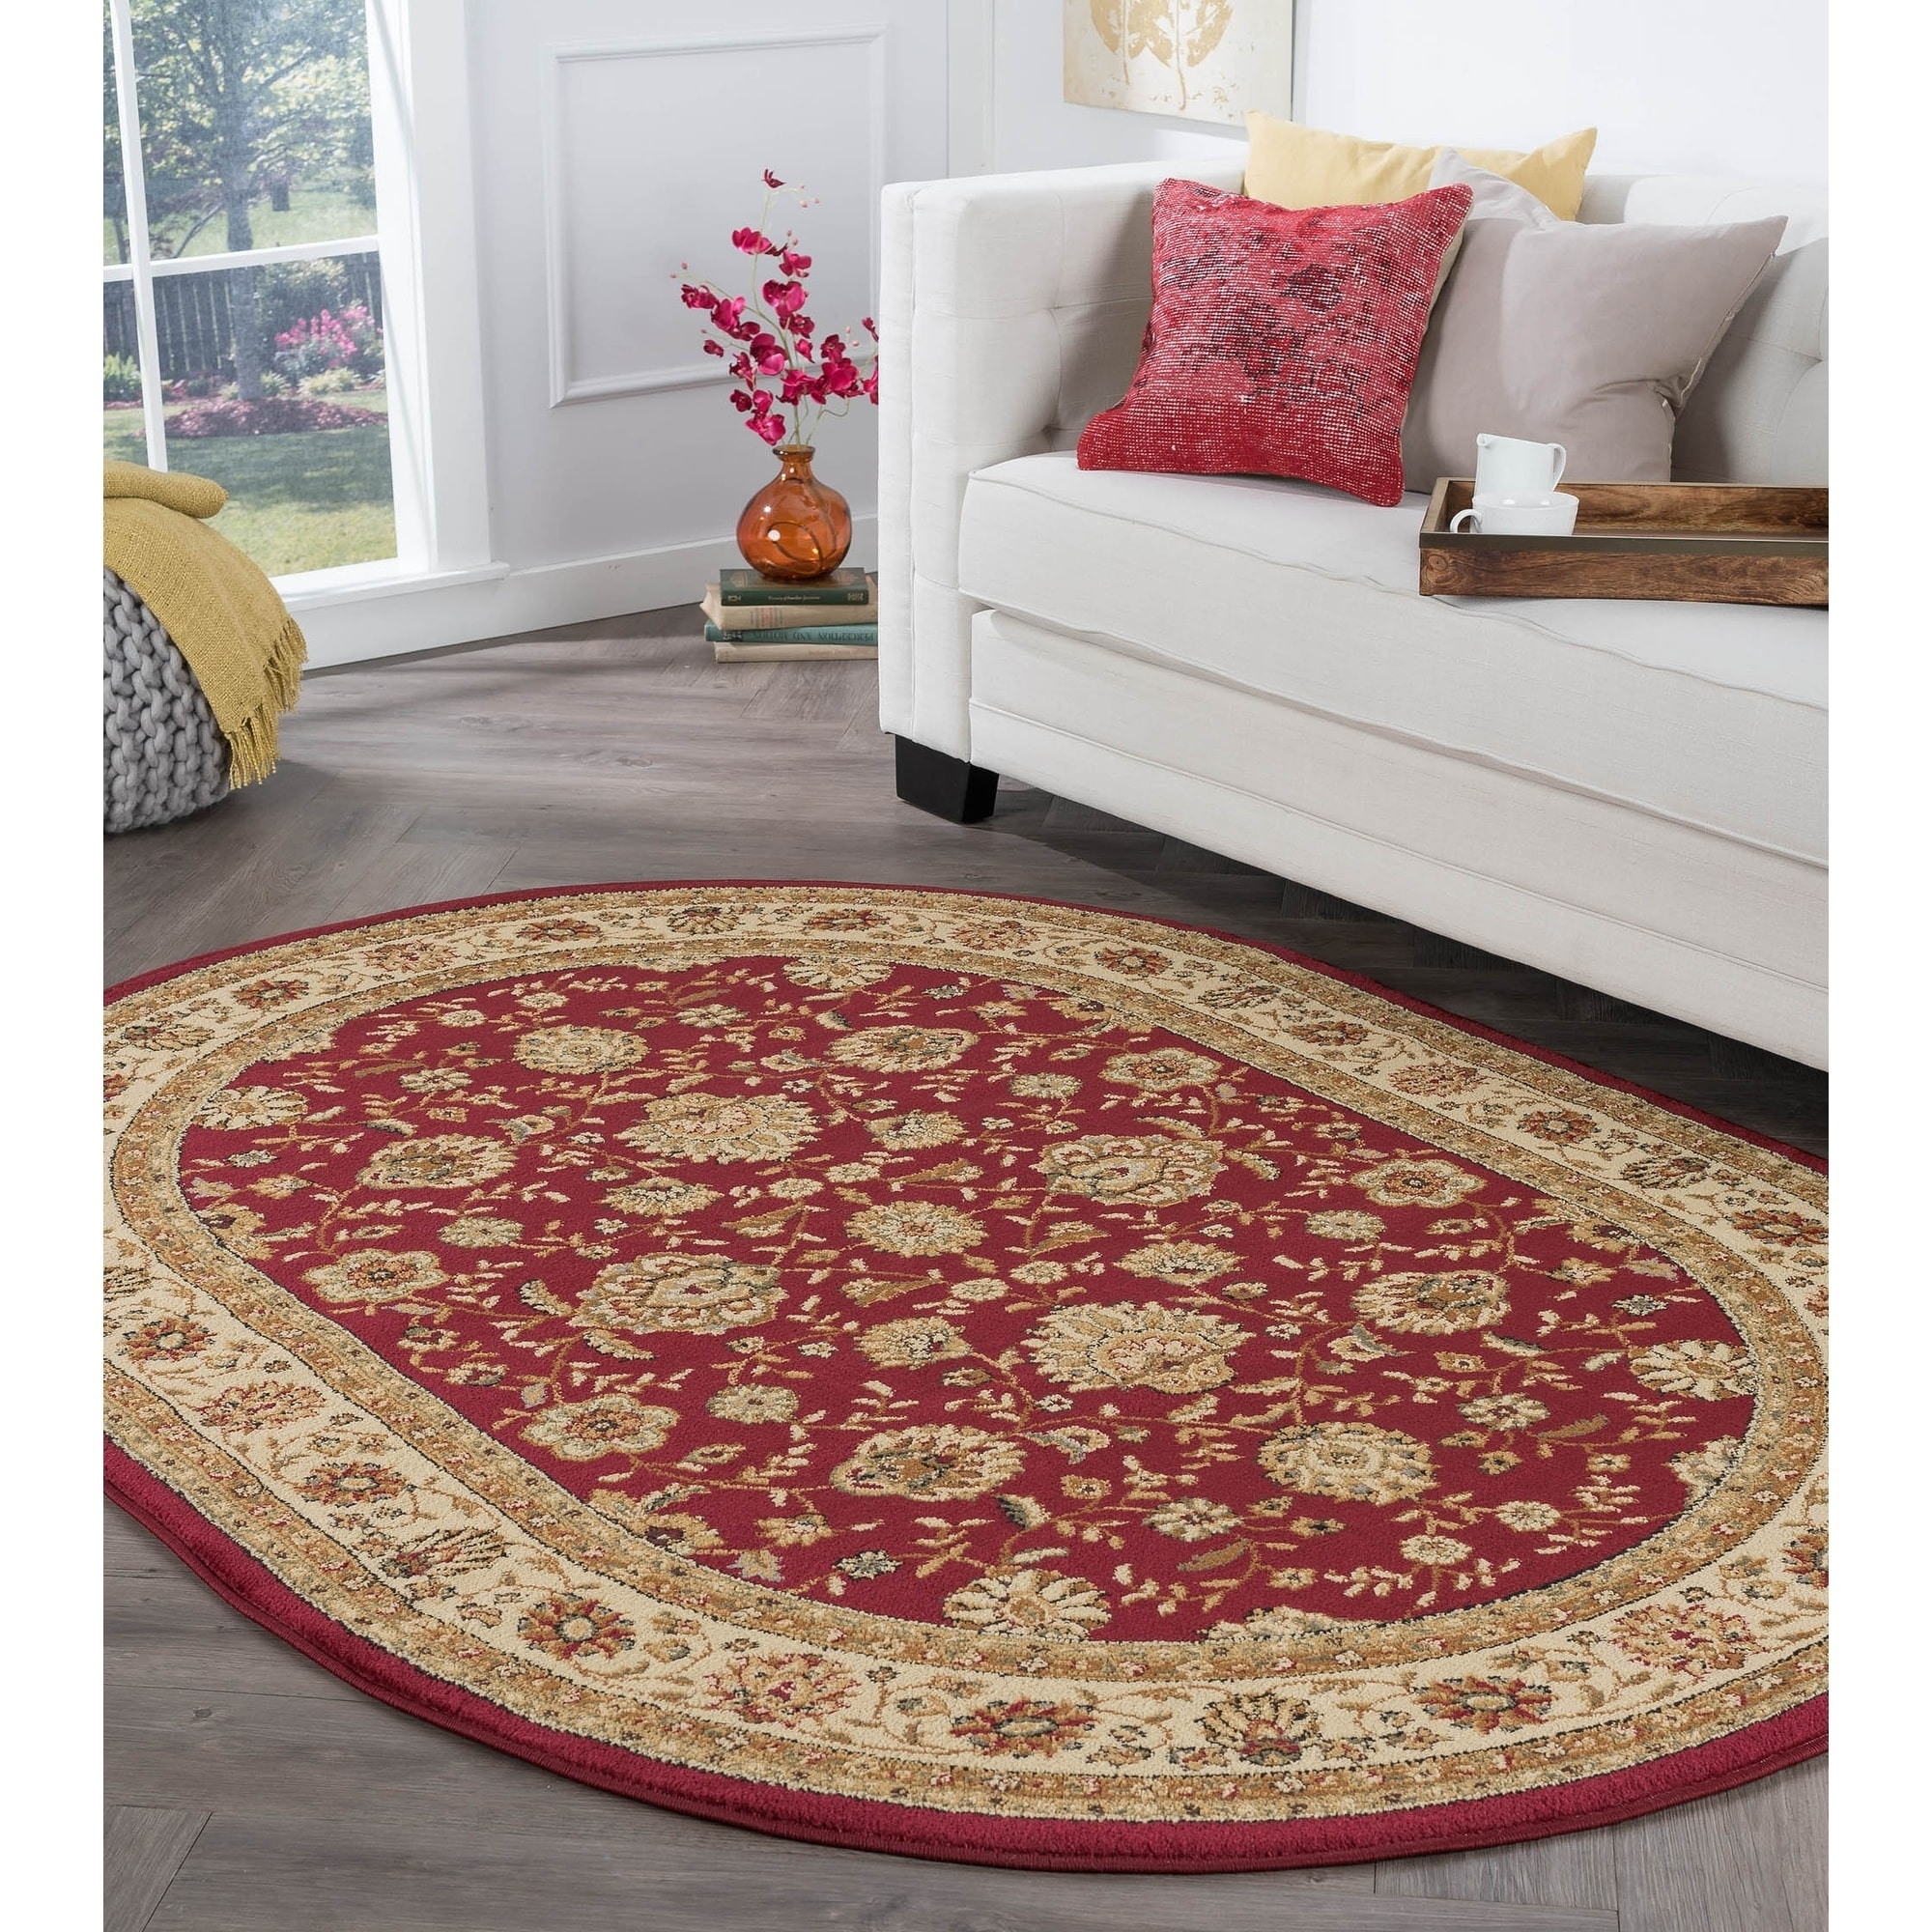 Alise Rhythm Red Traditional Area Rug (6'7 x 9'6 Oval), M...